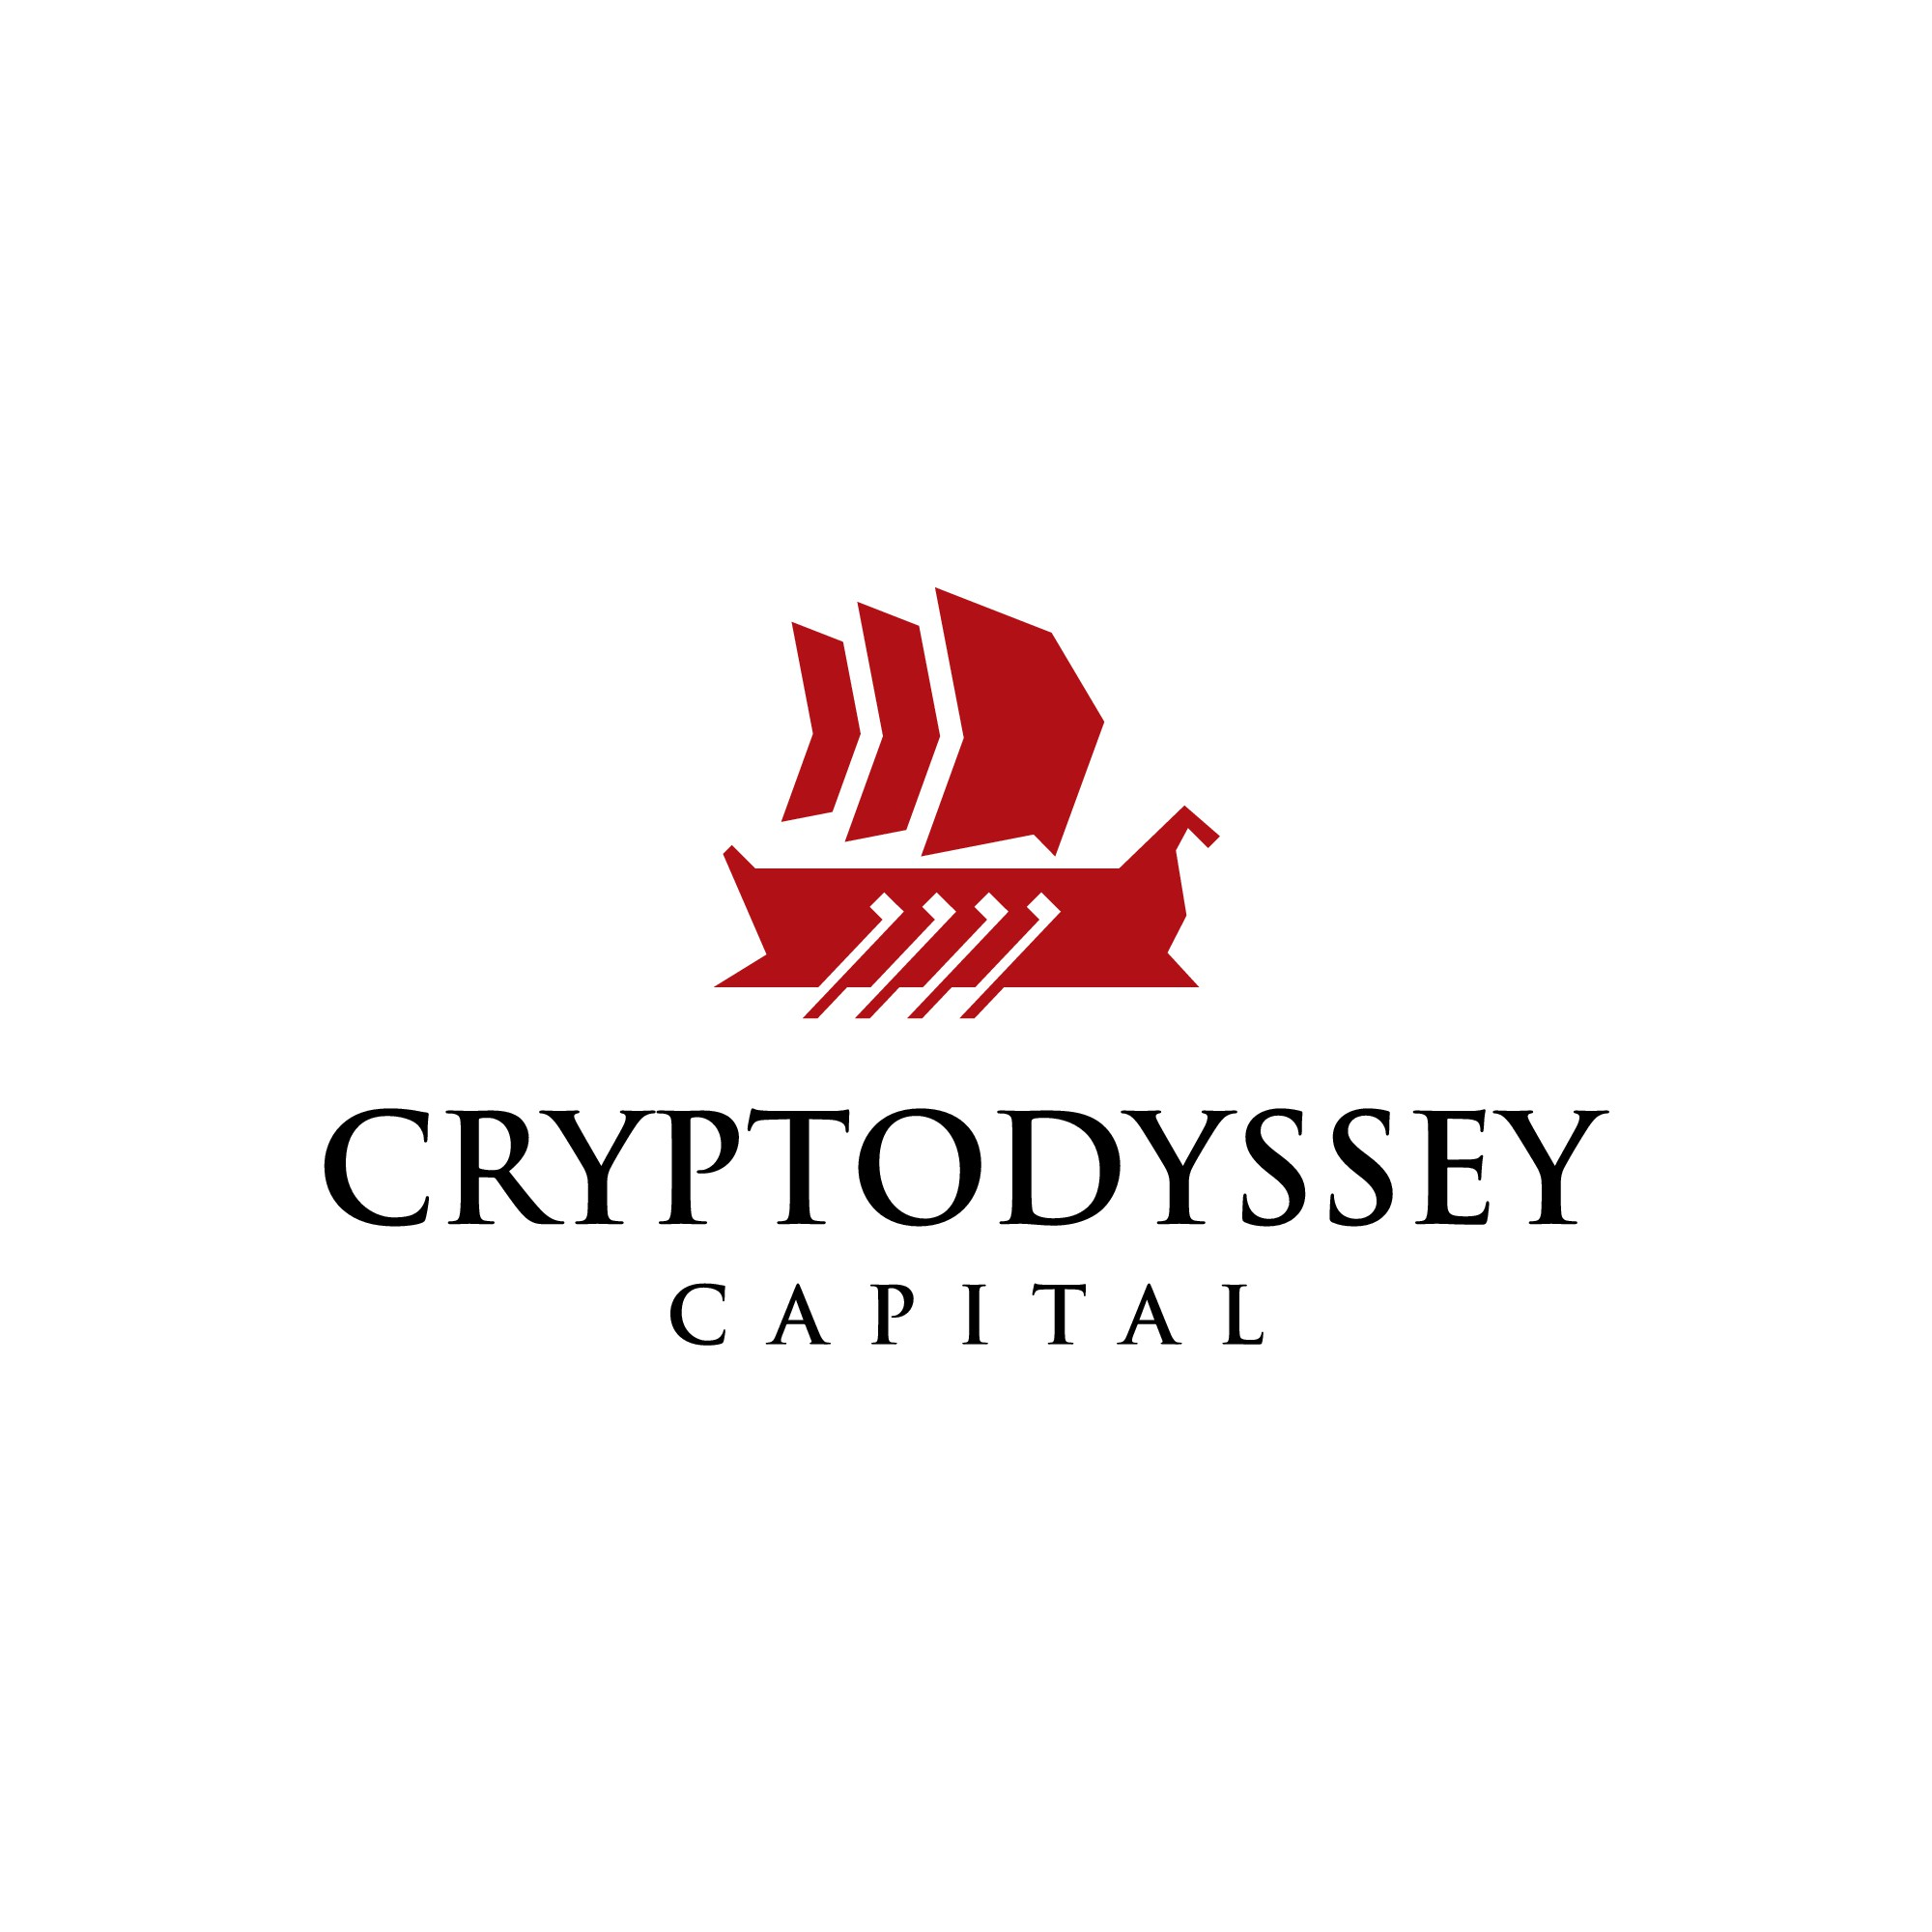 Design a logo that combines the digital world and mythology for large Crypto Hedge Fund